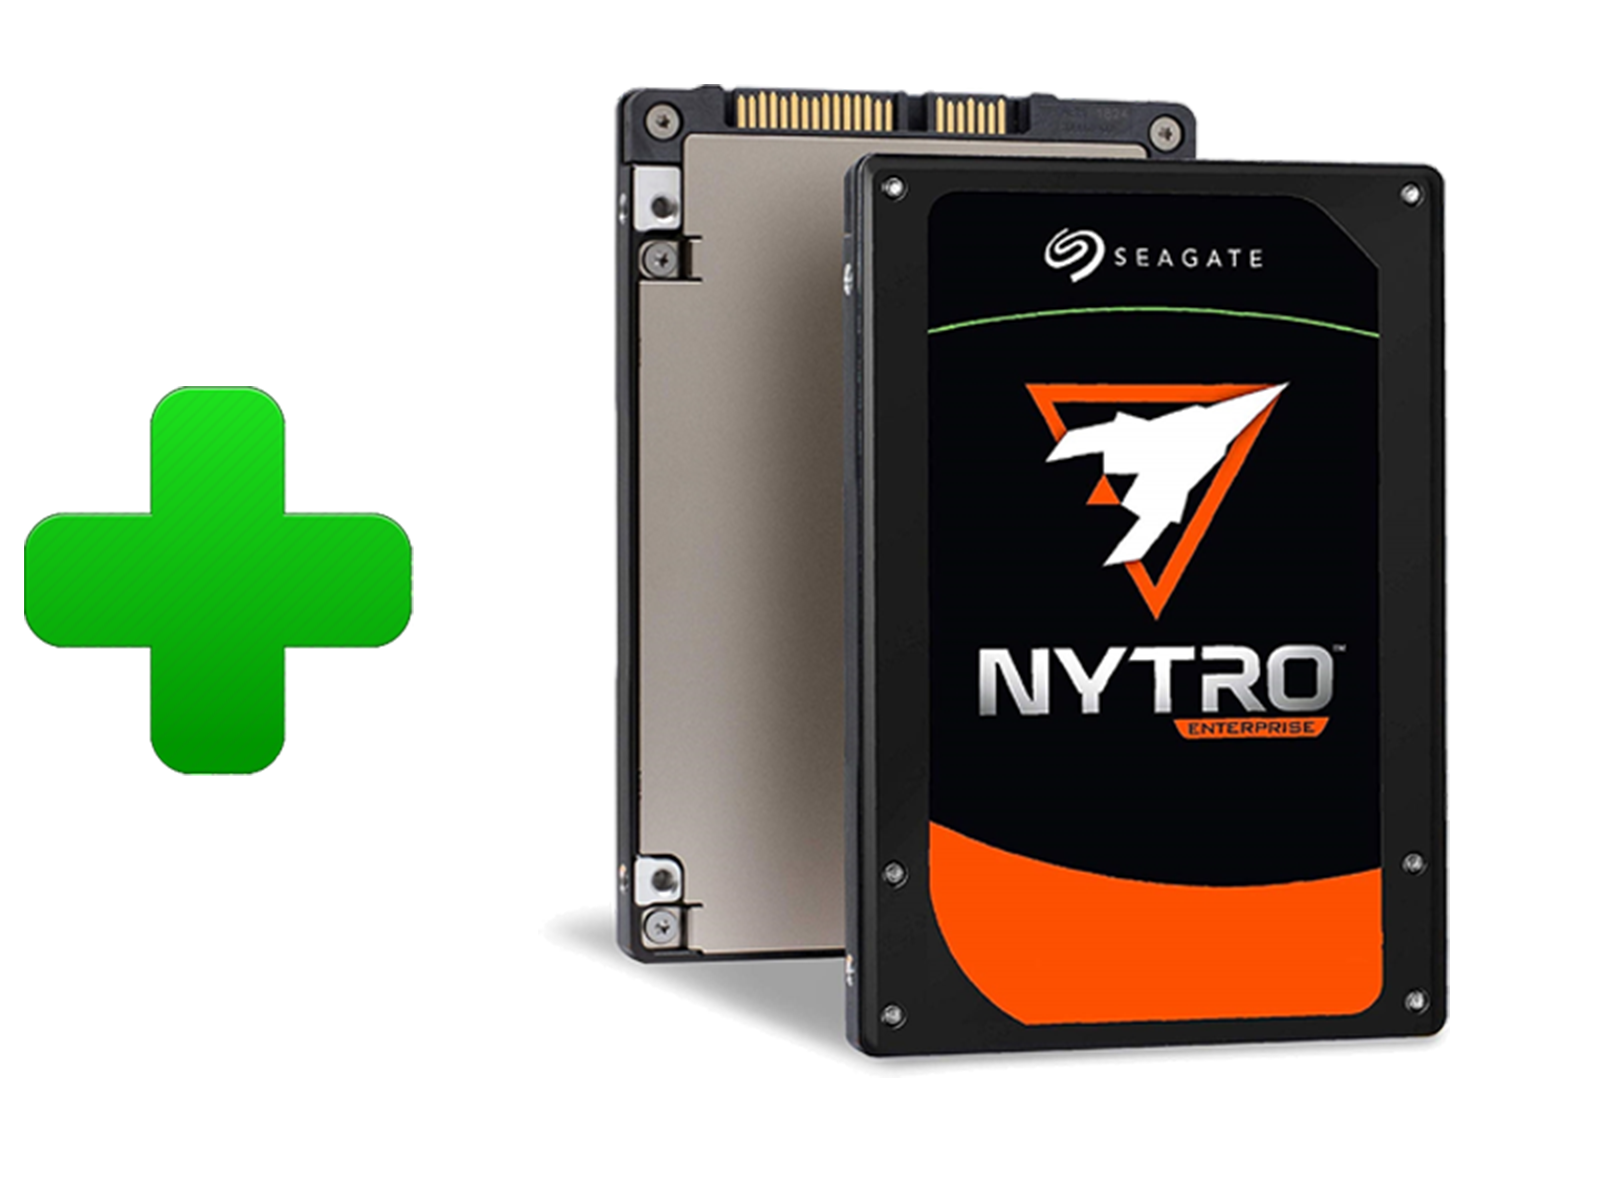 QNAP with Seagate Nytro Hard Drives